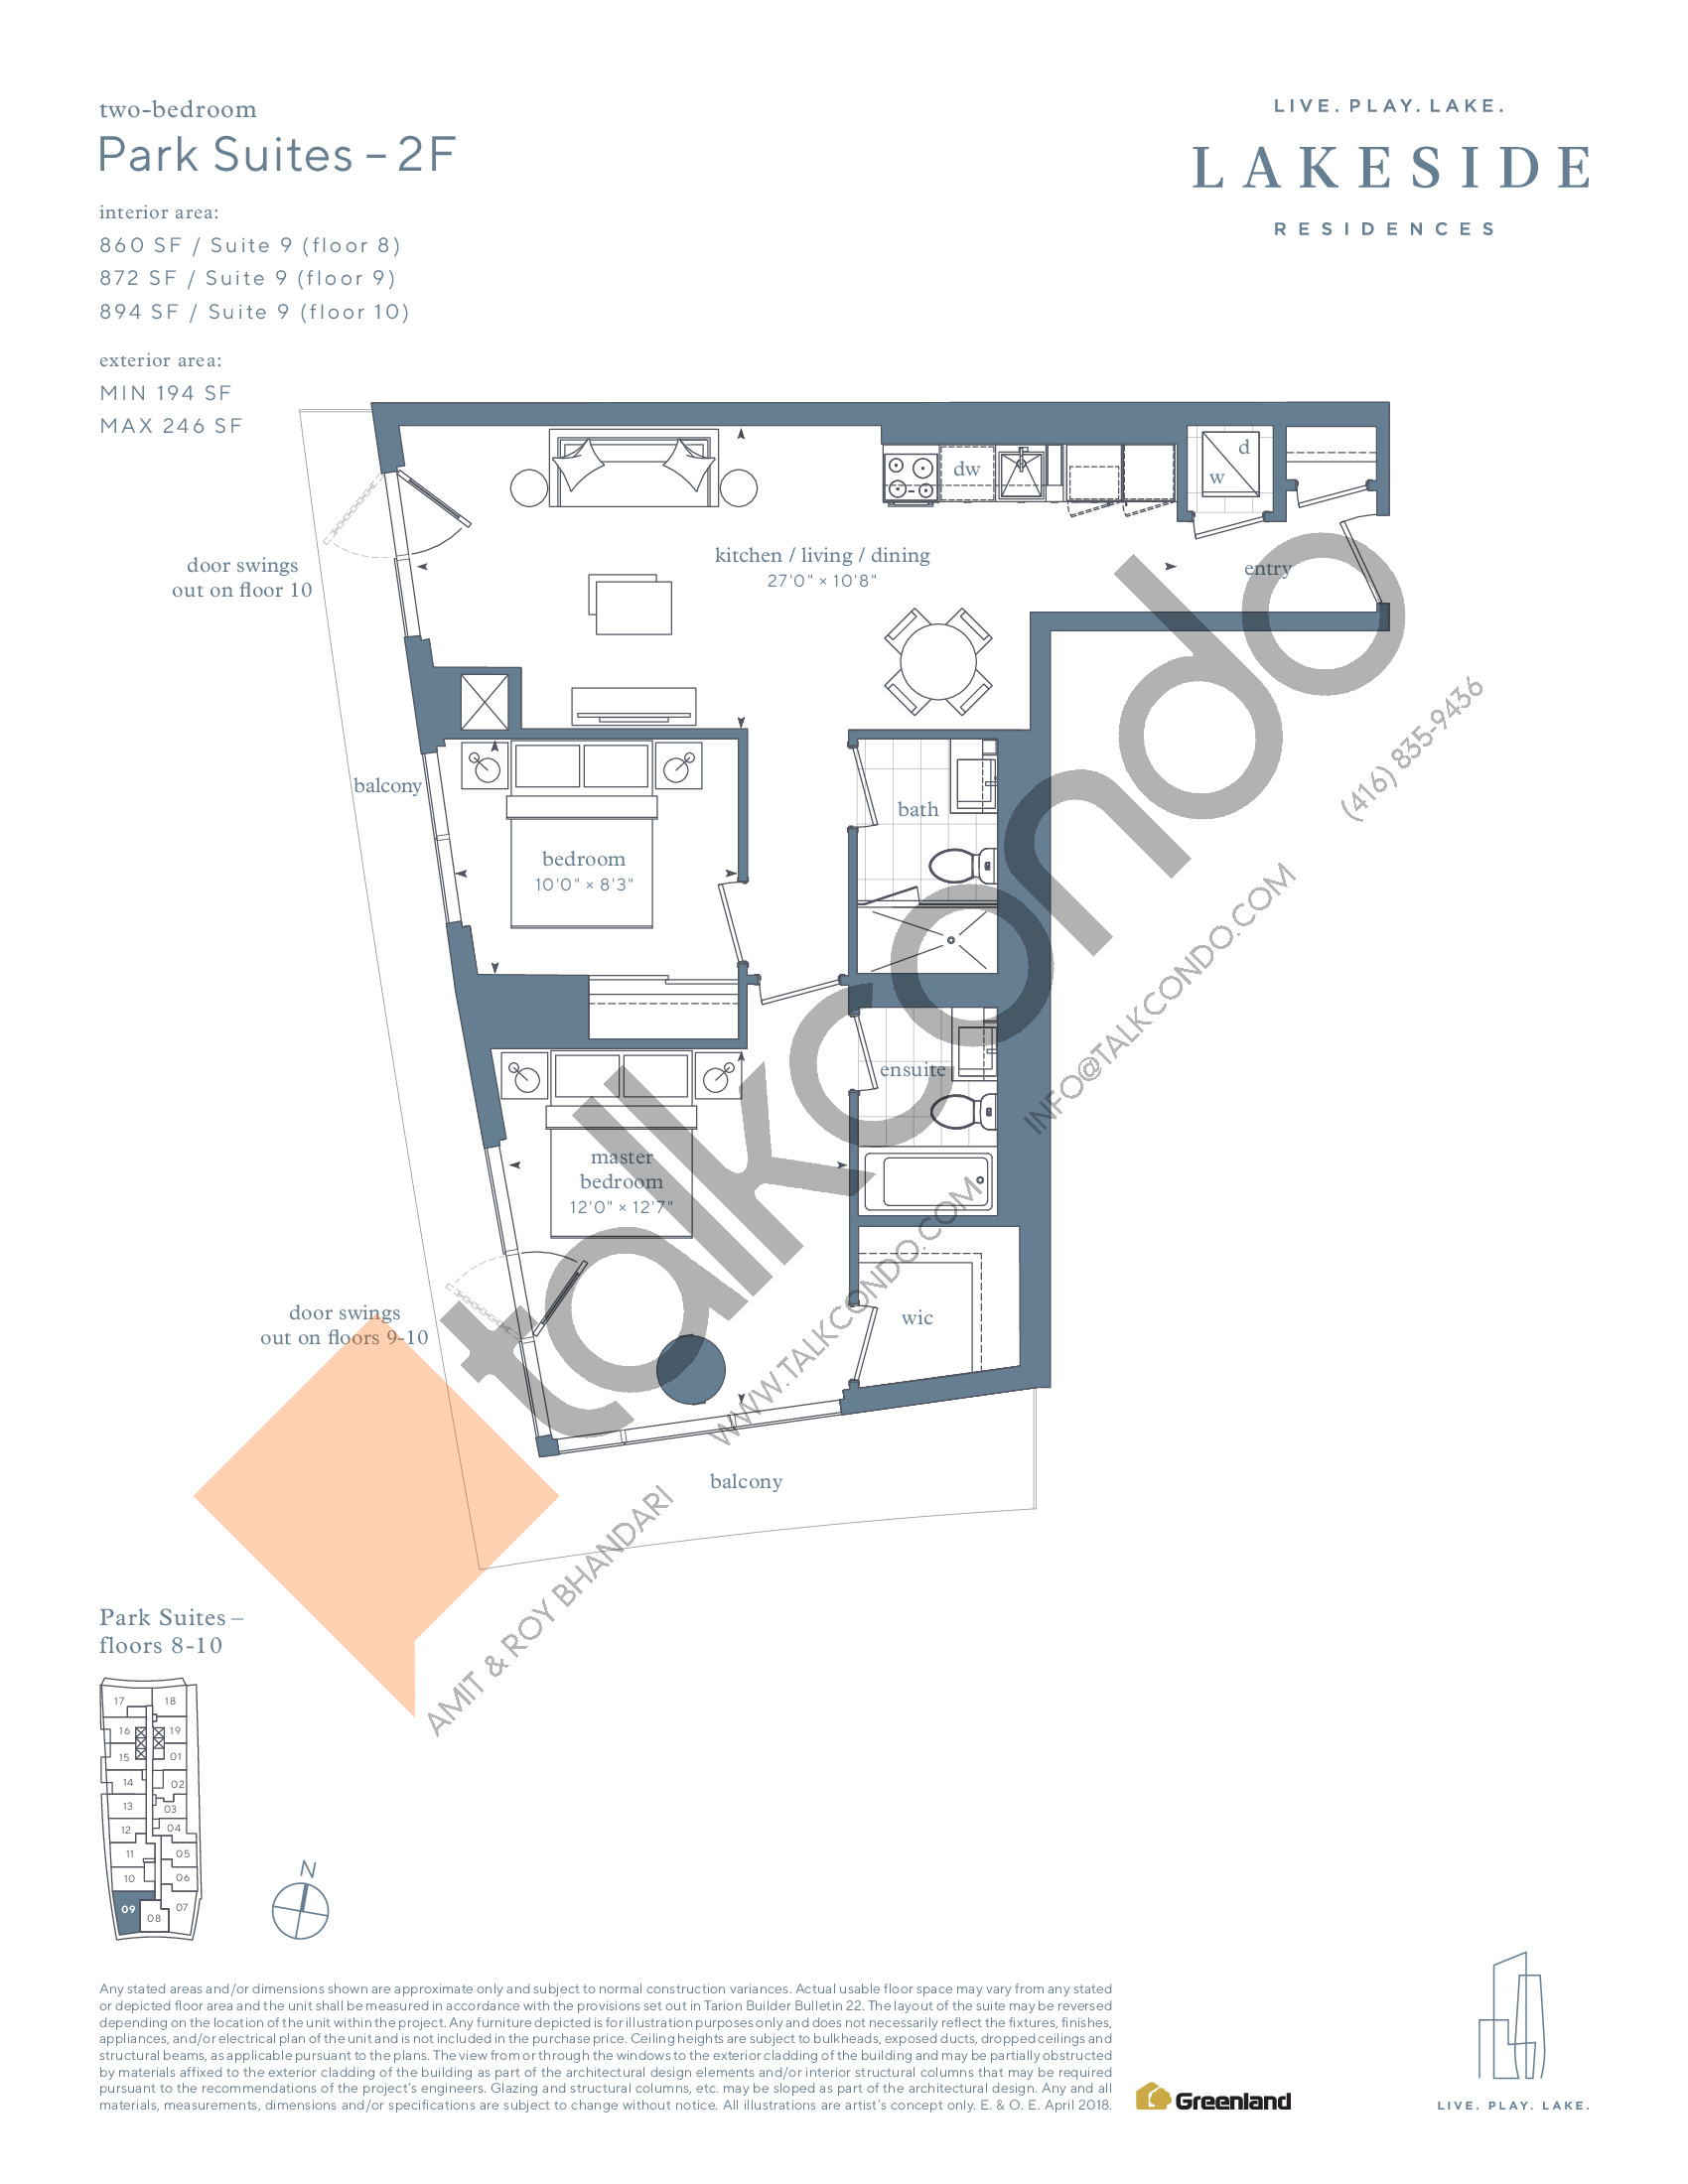 Park Suites - 2F Floor Plan at Lakeside Residences - 894 sq.ft